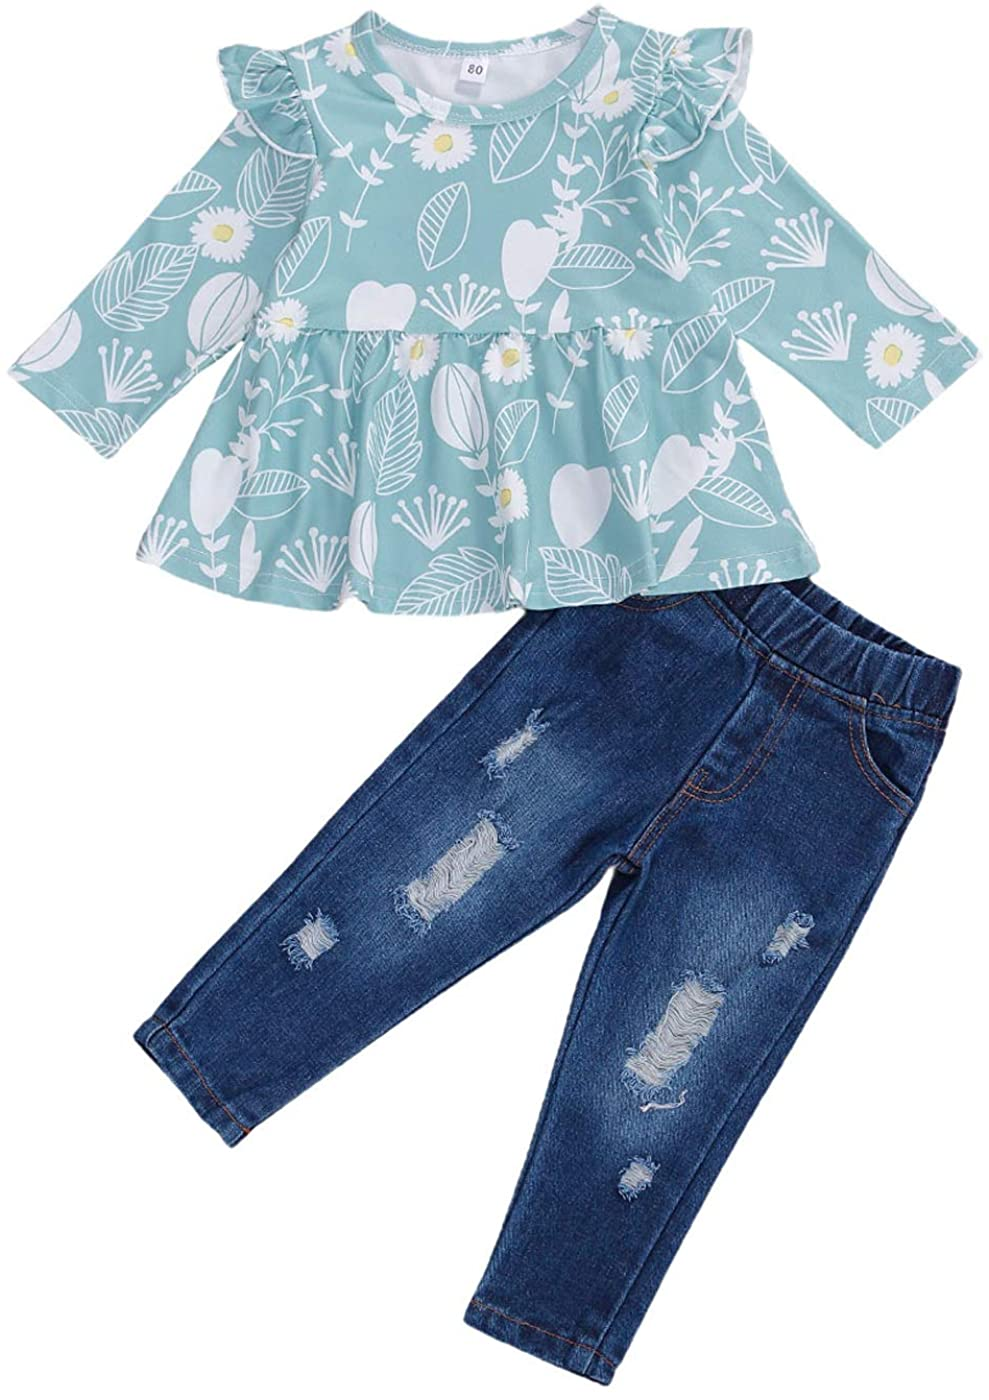 Toddler Baby Girl Floral Ruffle Top Long Sleeve Shirts Blouse Distressed Jeans High Waist Denim Pants Outfits